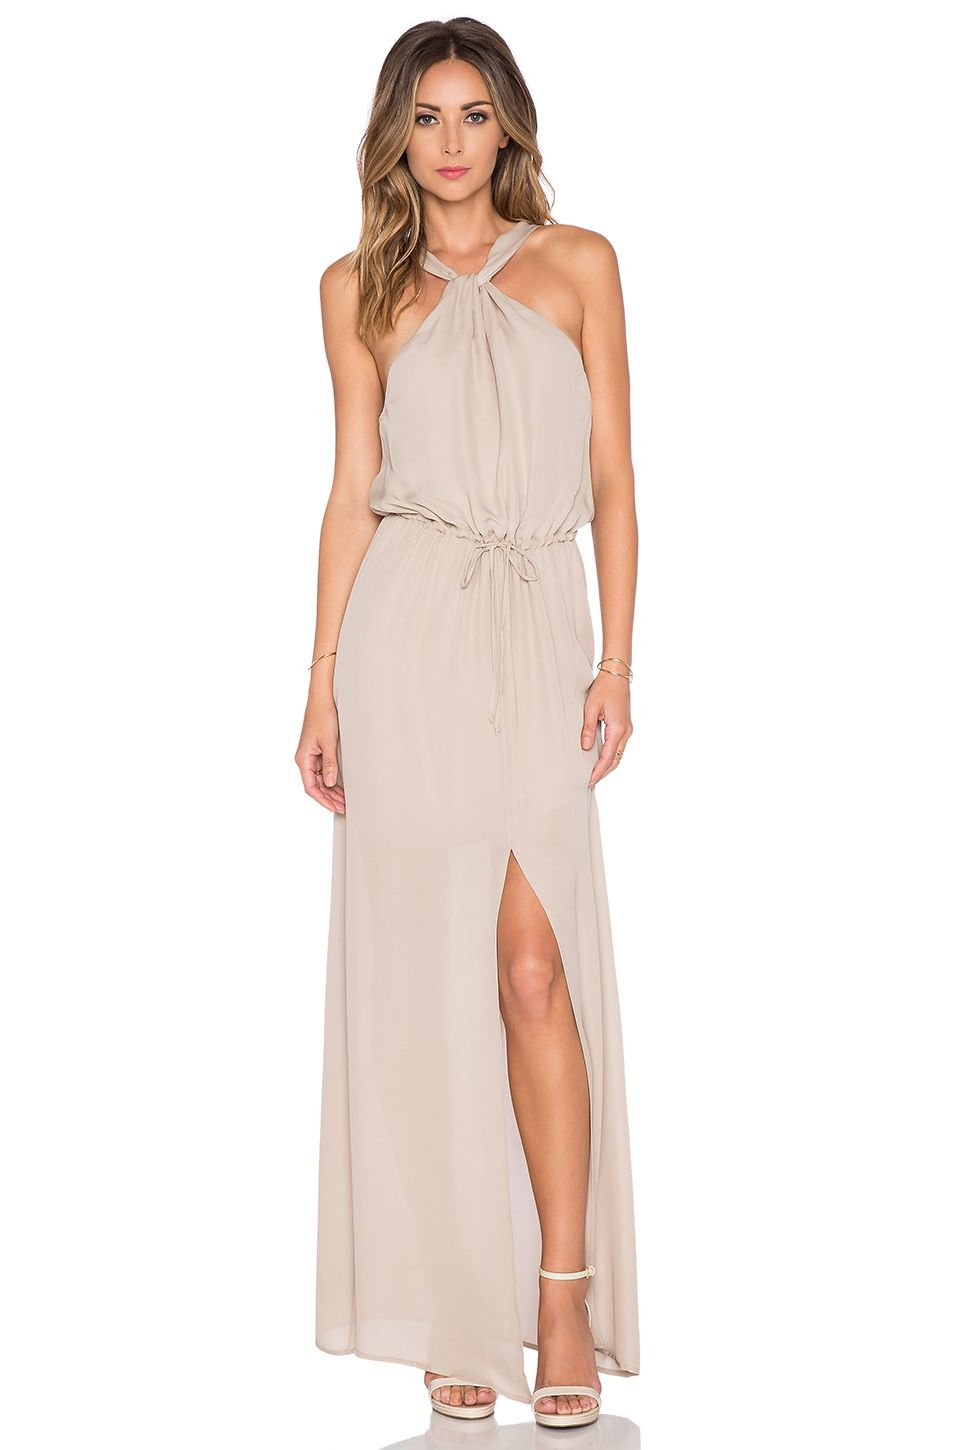 Long dress for wedding guest  REVOLVEclothing  Dresses  Pinterest  Maids Black tie and Gowns